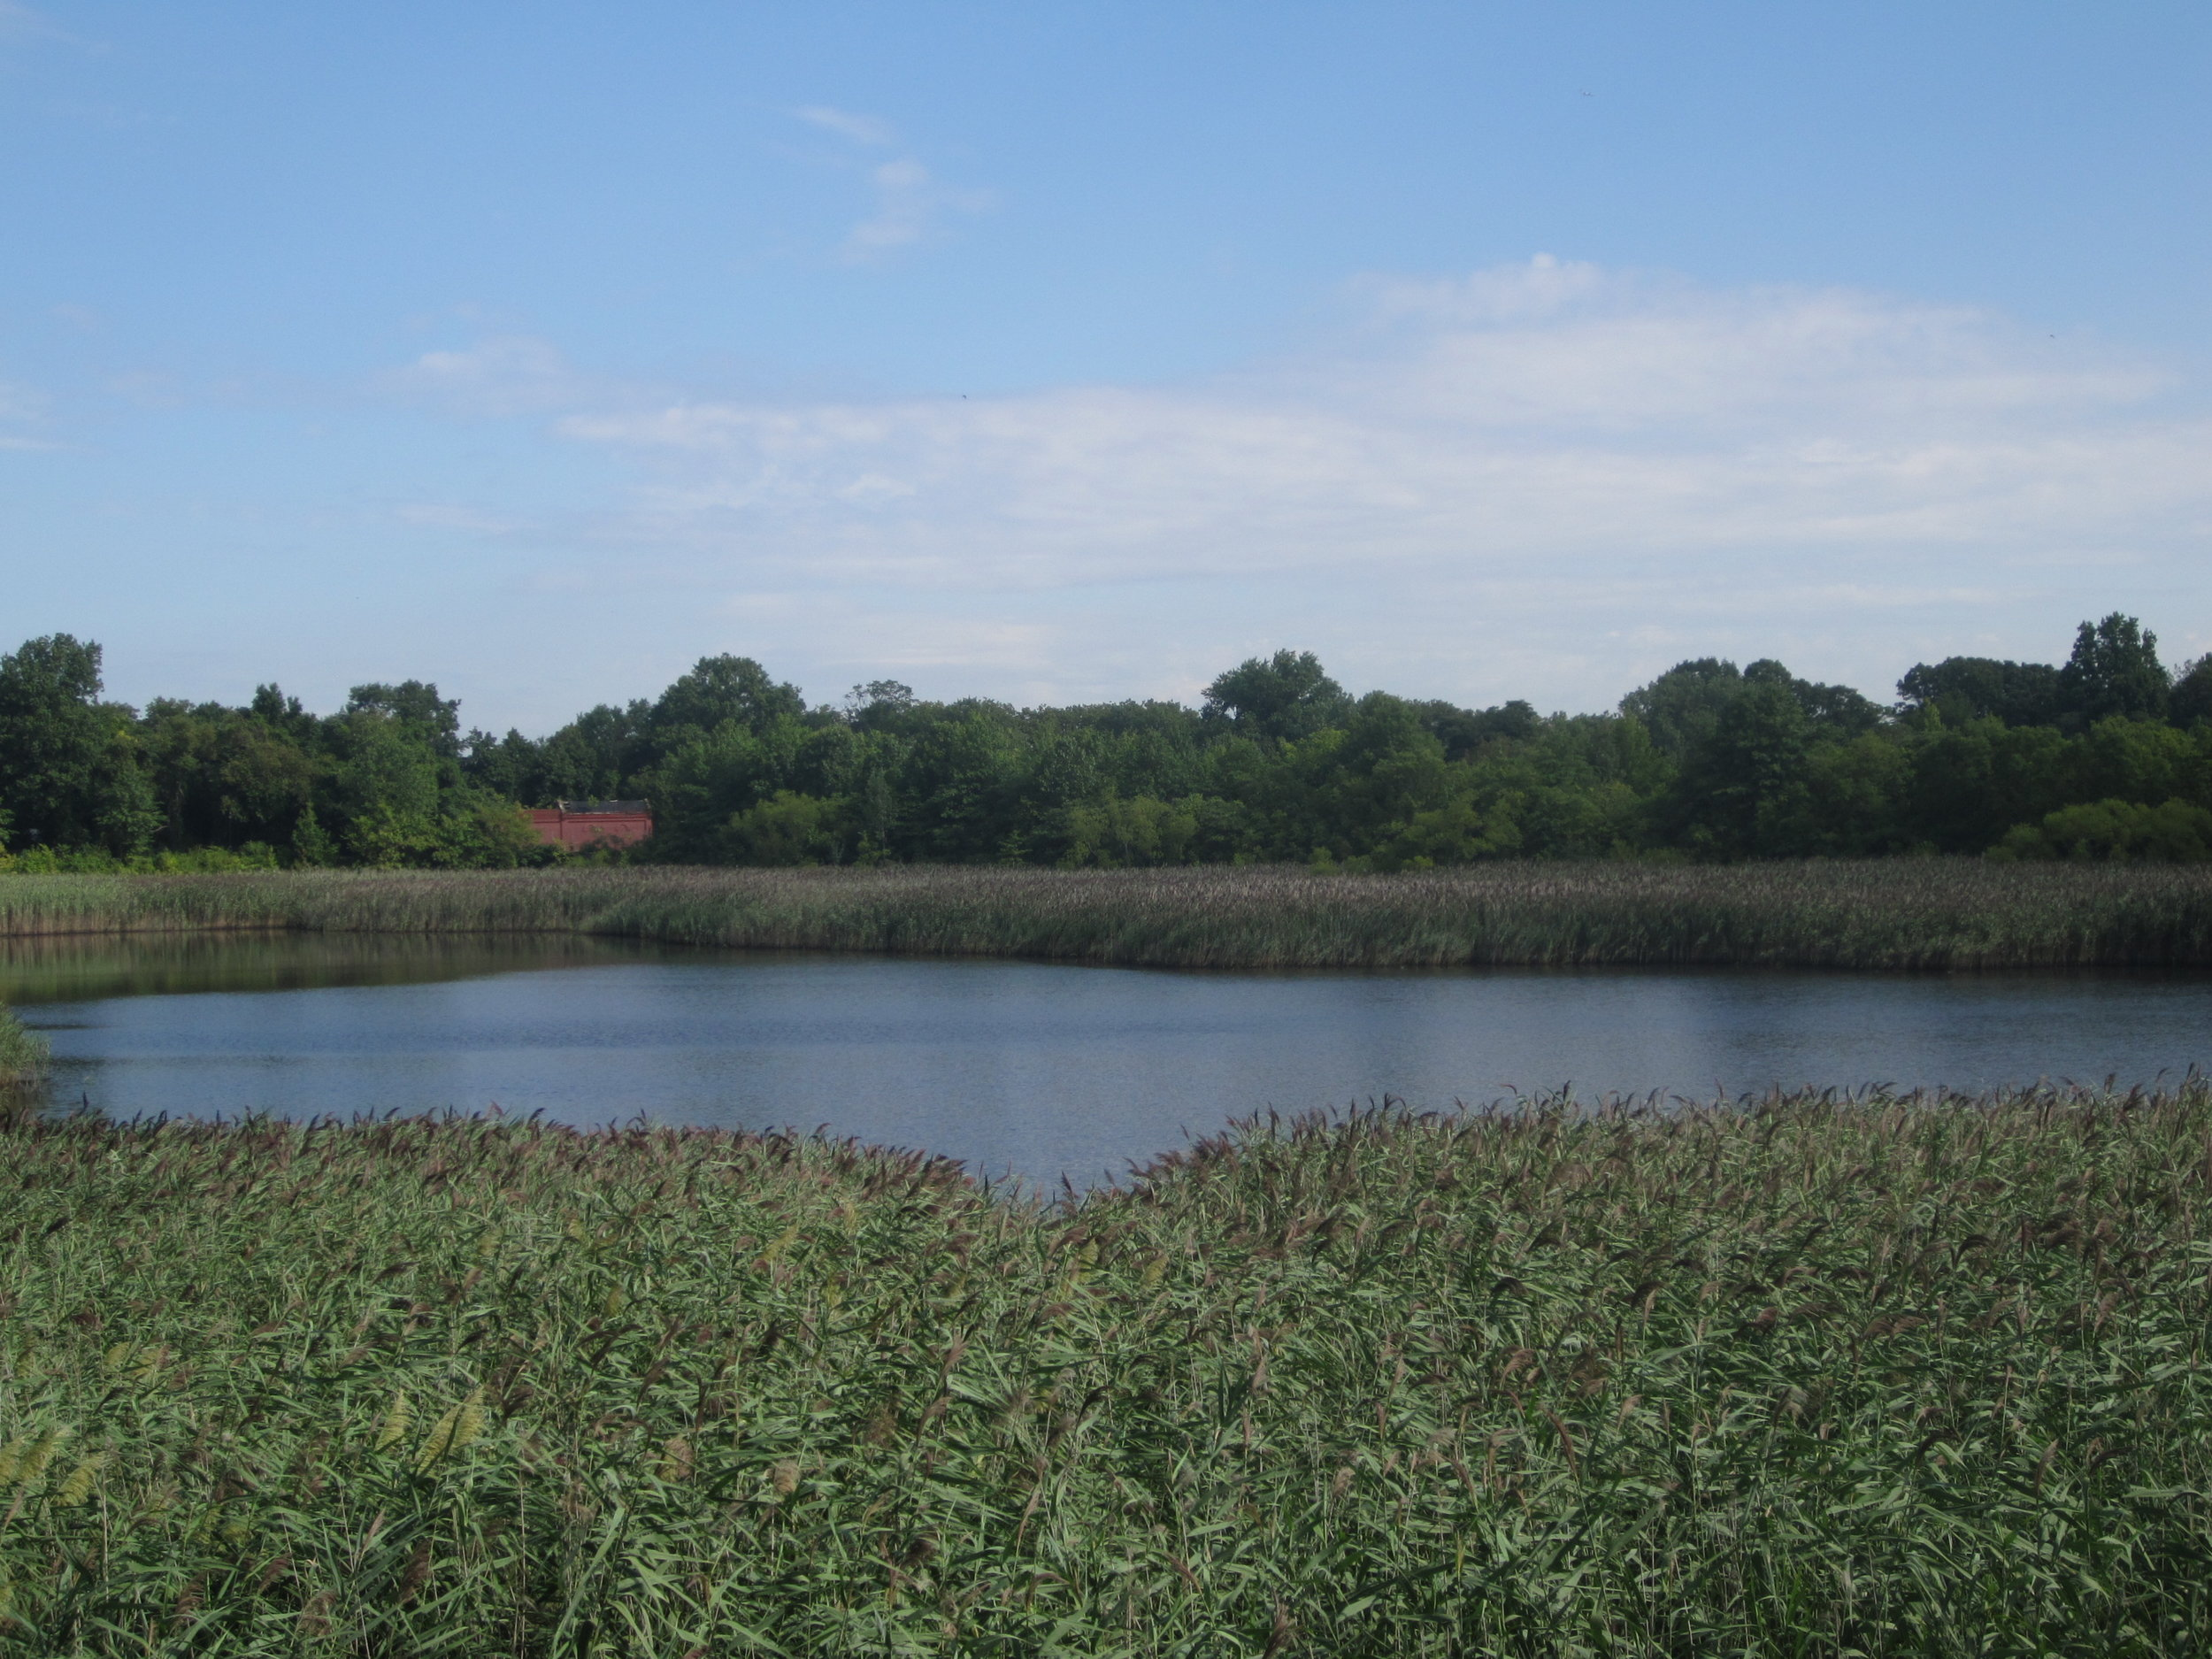 The Ridgewood Reservoir. Photo courtesy of the Newtown Historical Society